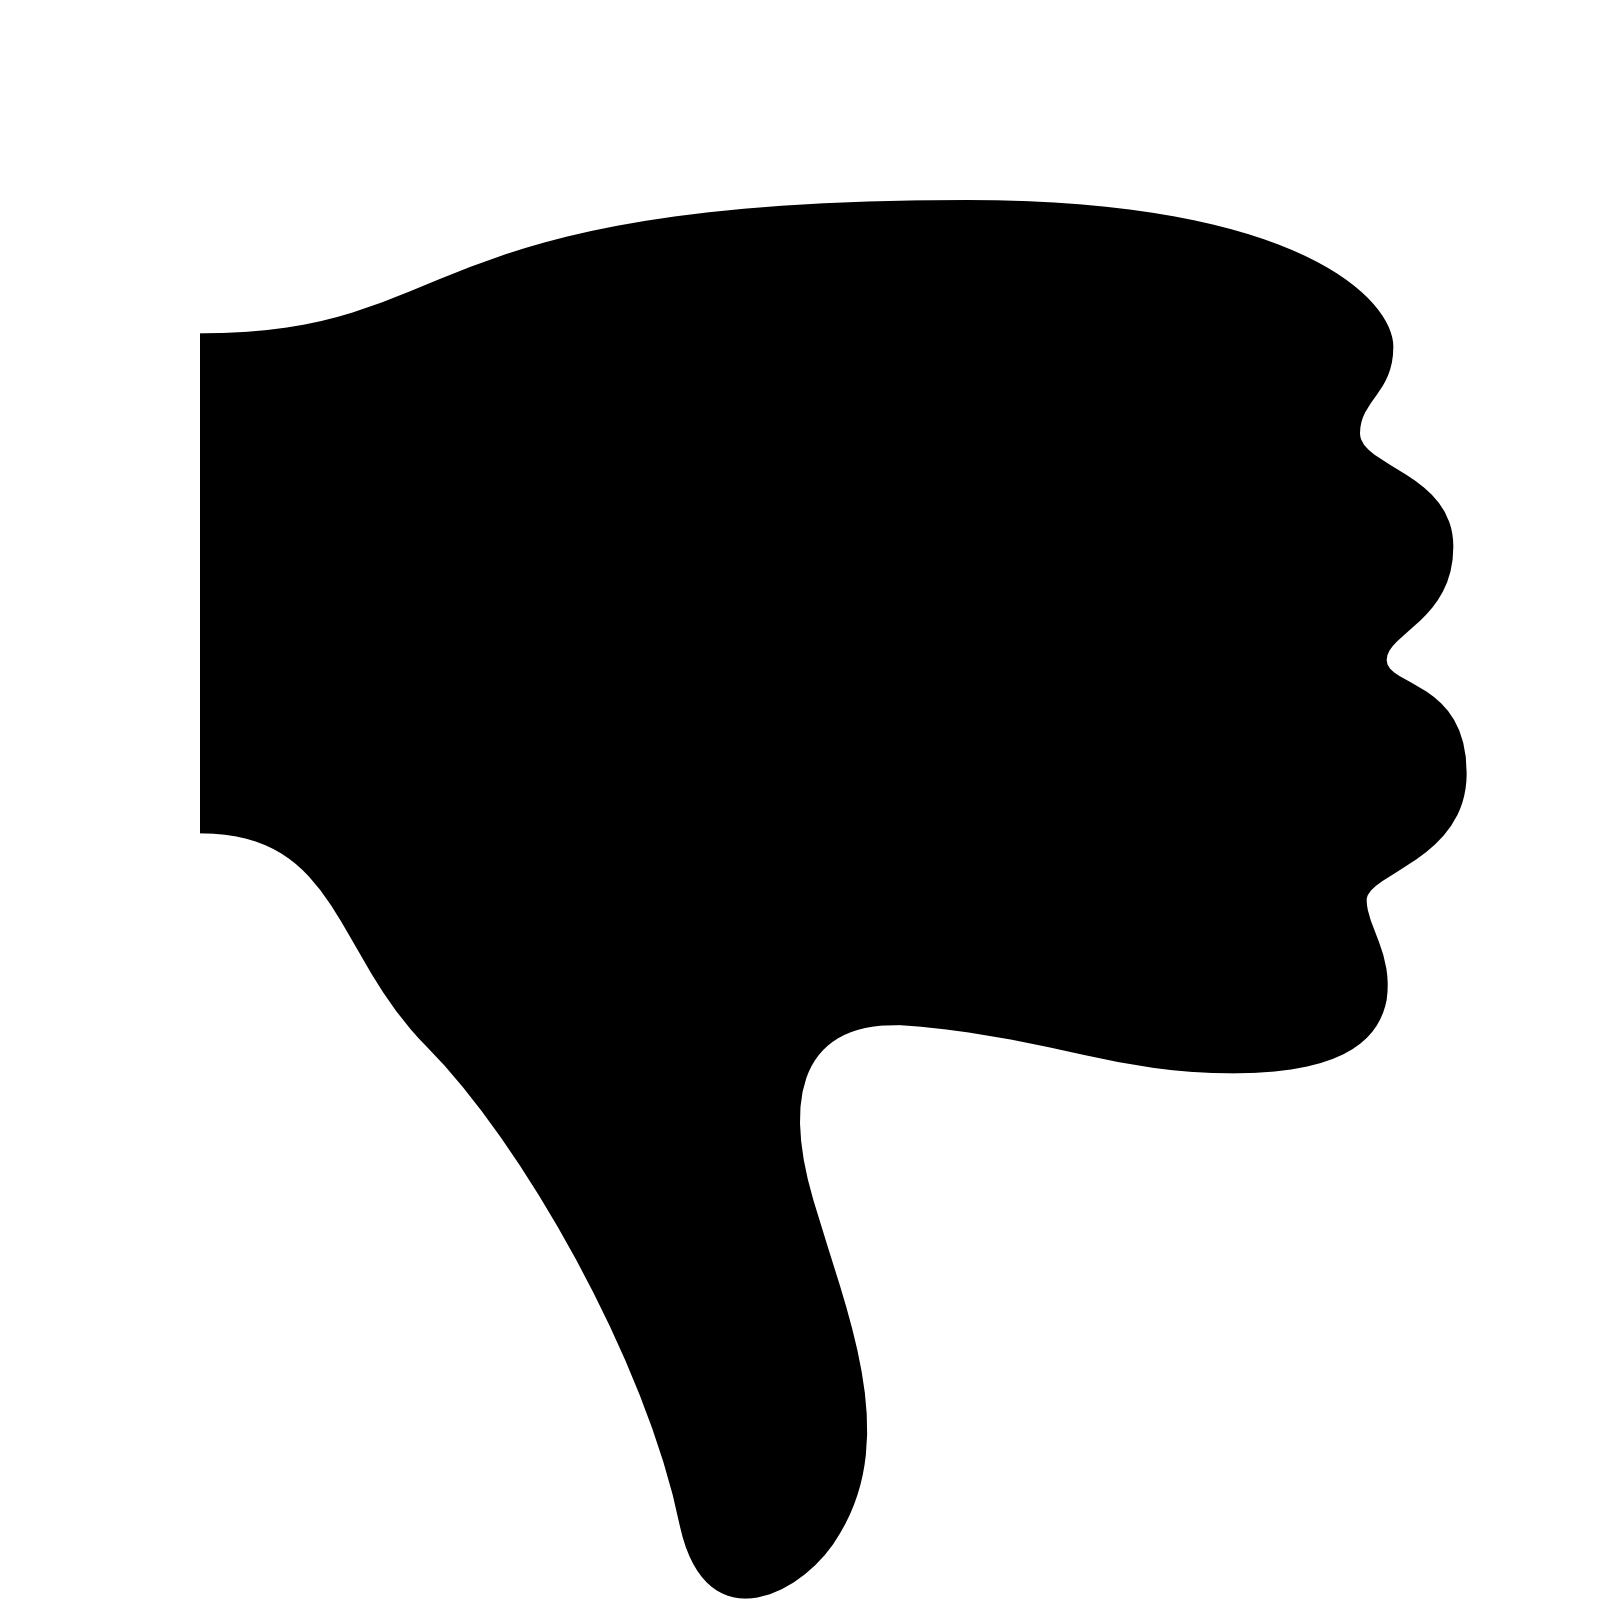 PNG Thumbs Down Transparent Thumbs Down.PNG Images. | PlusPNG